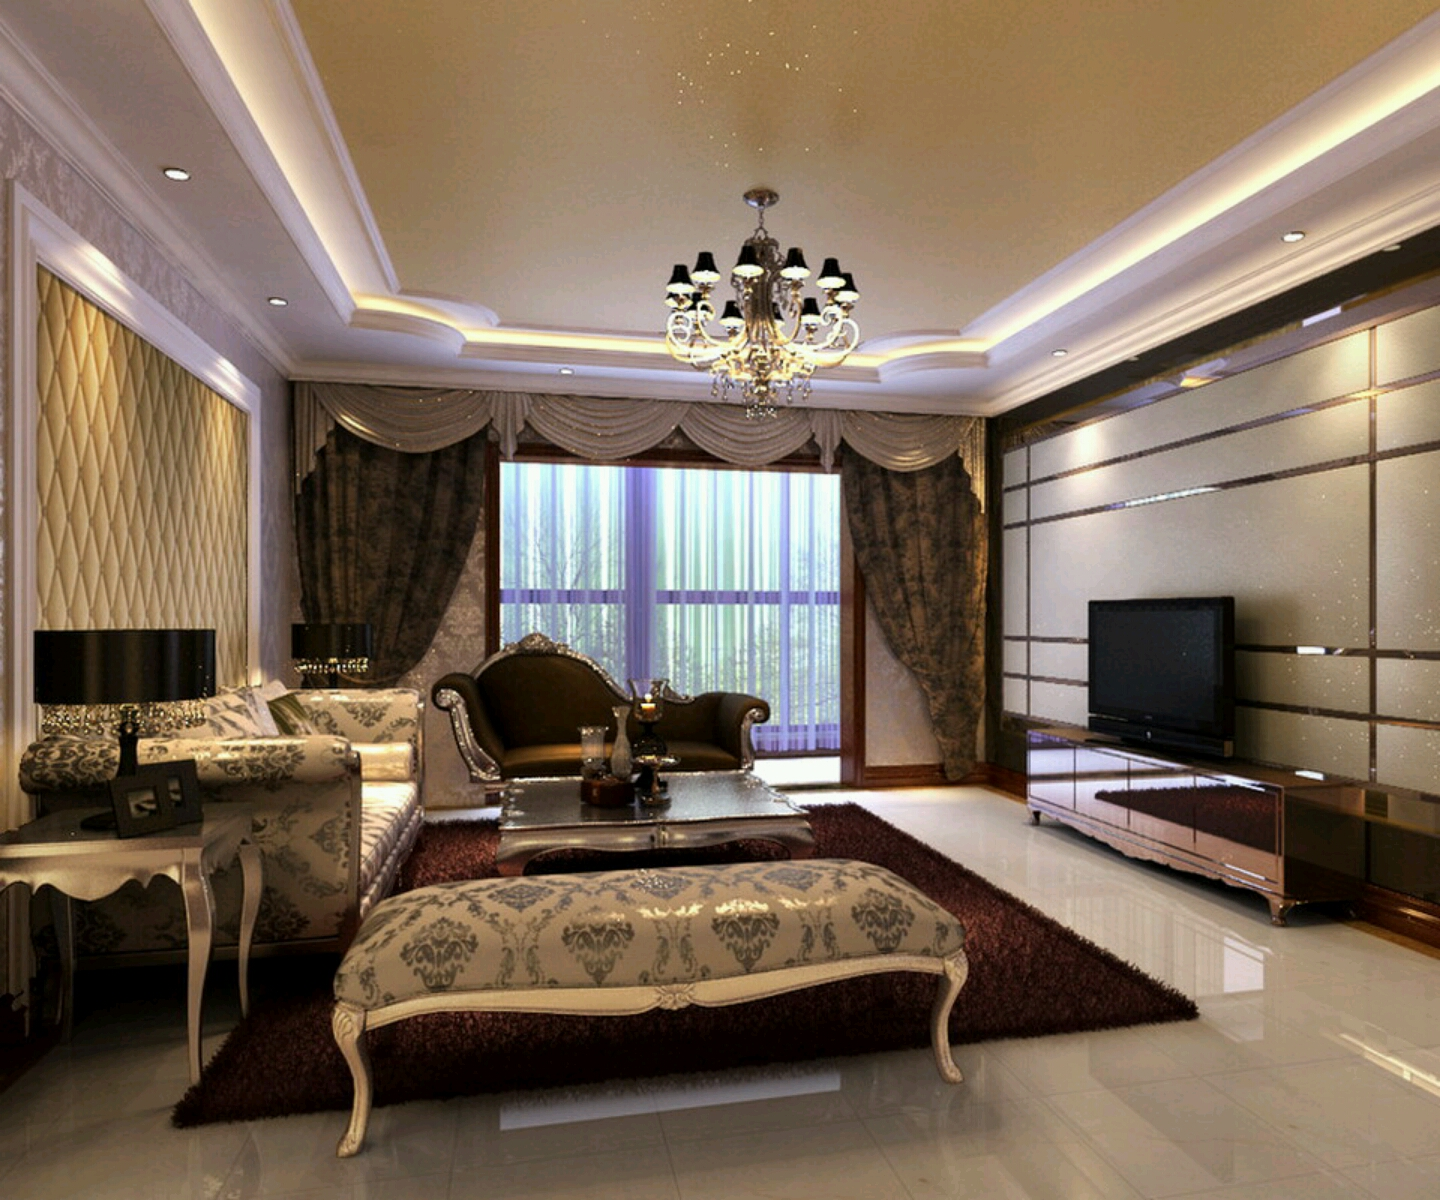 Interior decorating ideas living rooms dream house for Luxury apartment interior design ideas